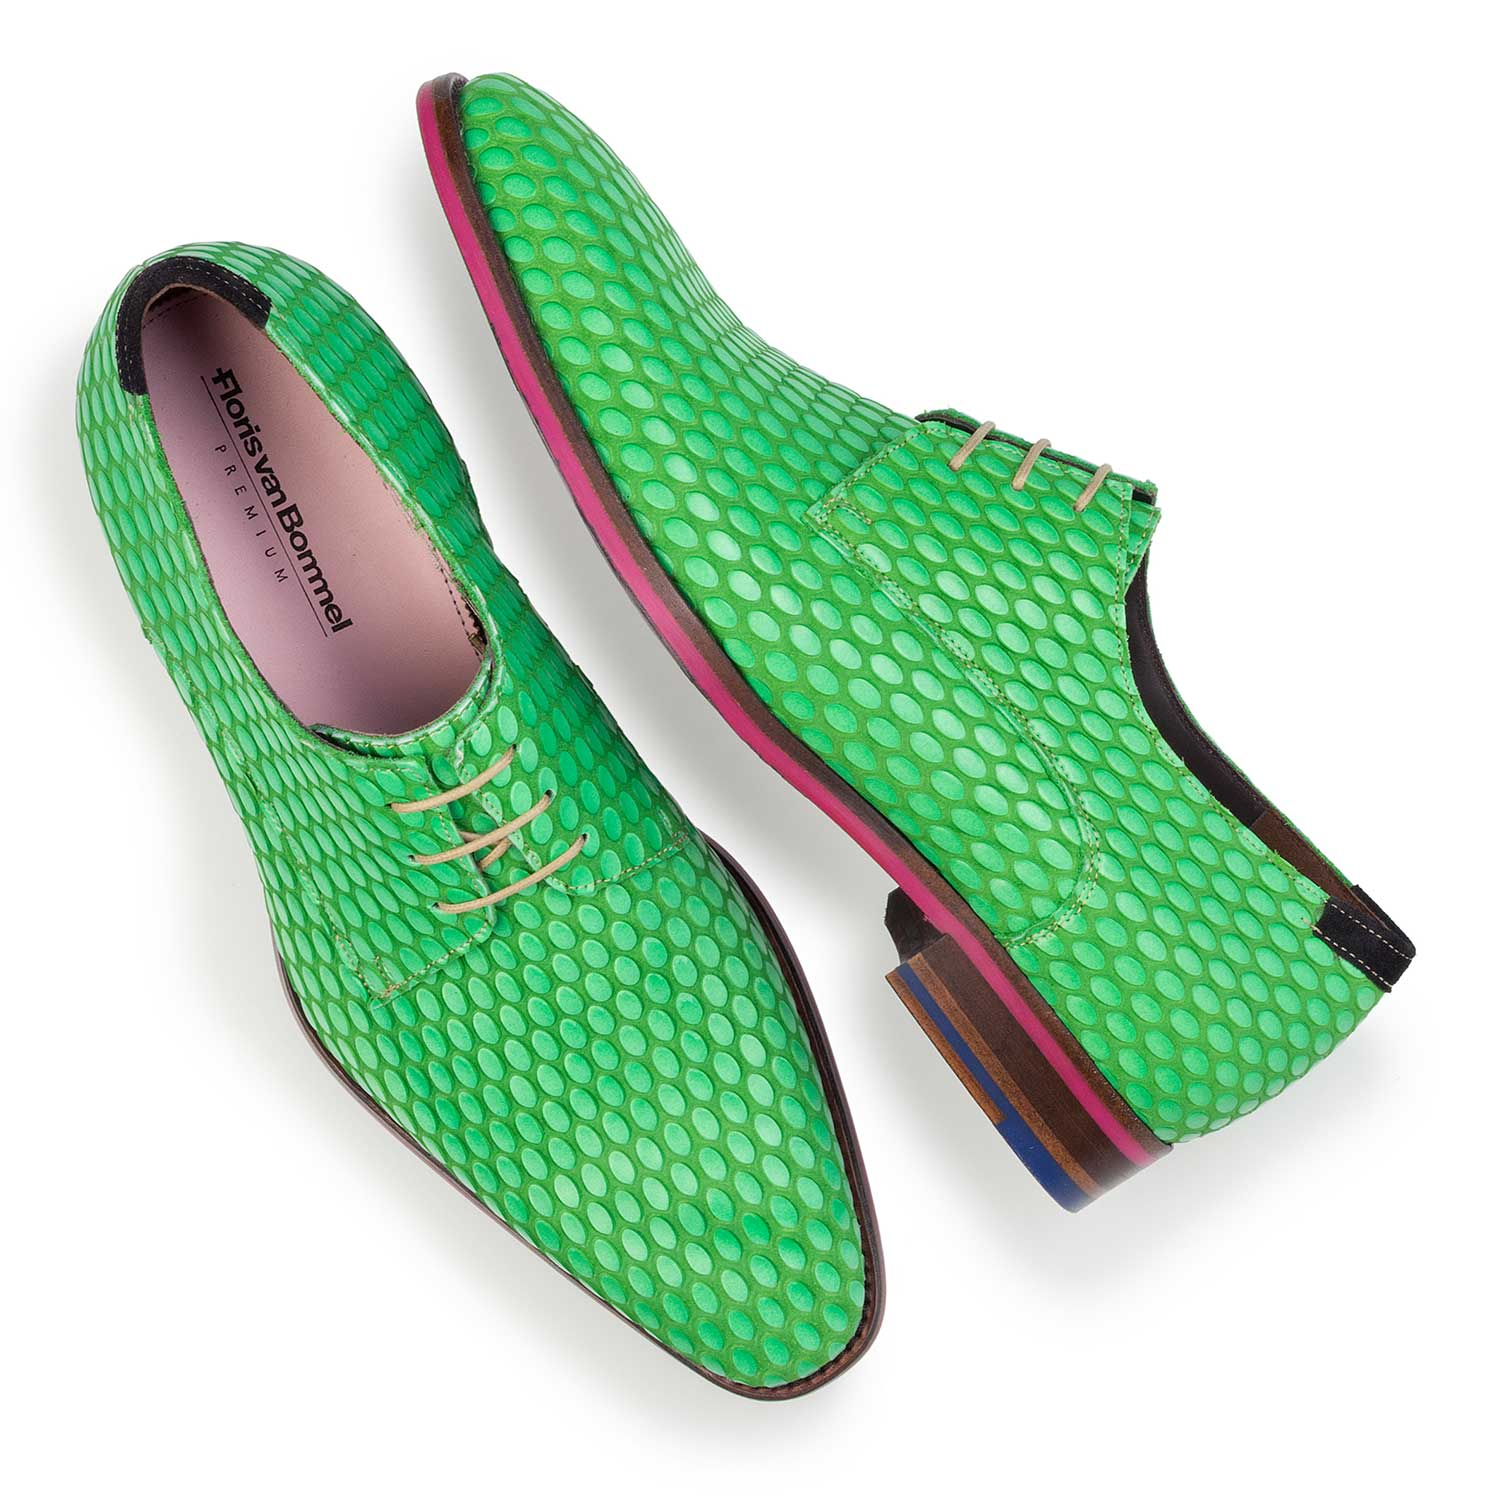 14157/00 - Premium green leather lace shoe